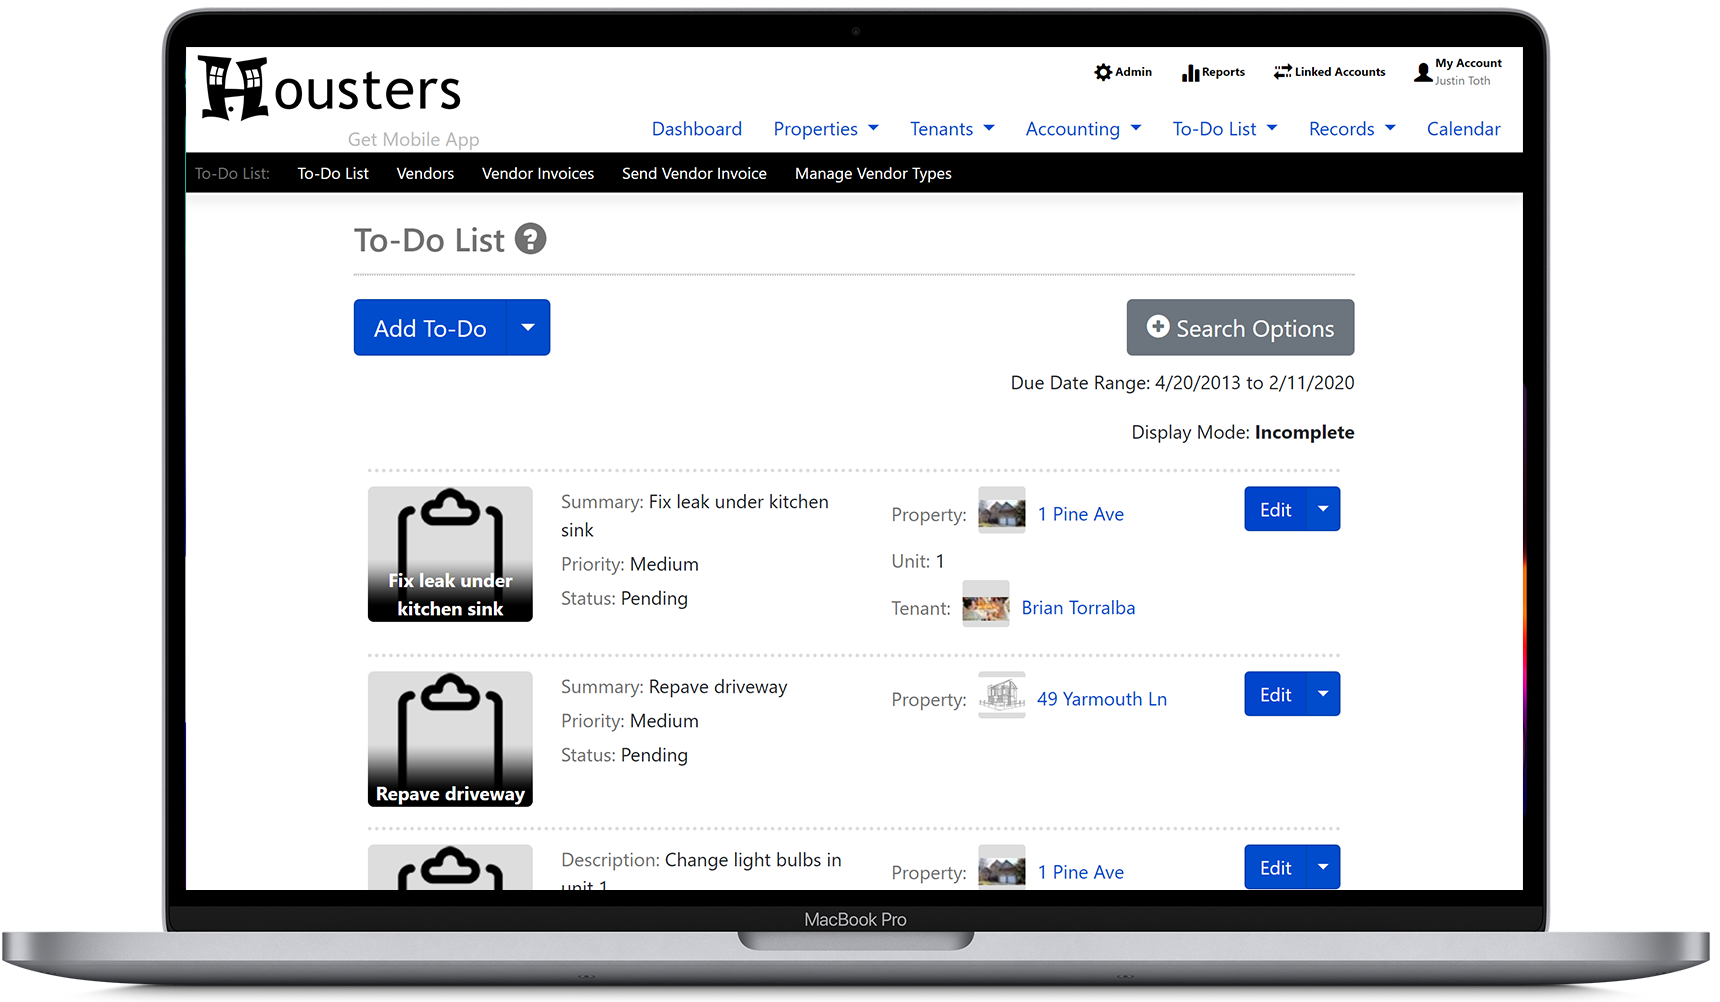 View a list of to-do list tasks on the Housters property manager software